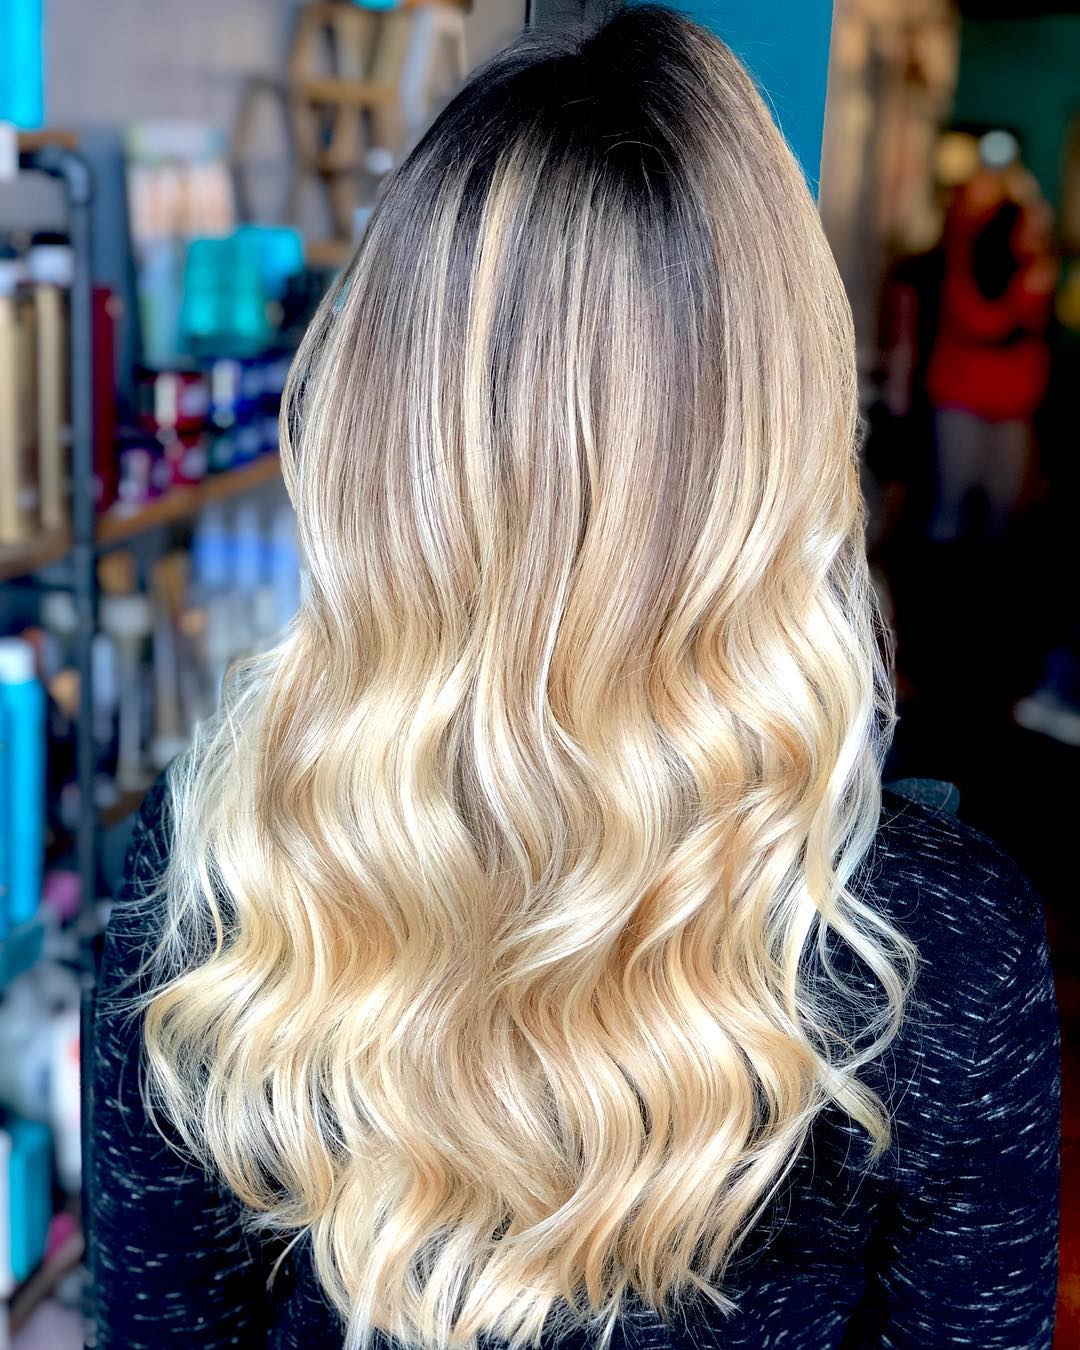 balayage ombre hairstyles 12 9 New Blonde Balayage Hairstyles You'll Love!